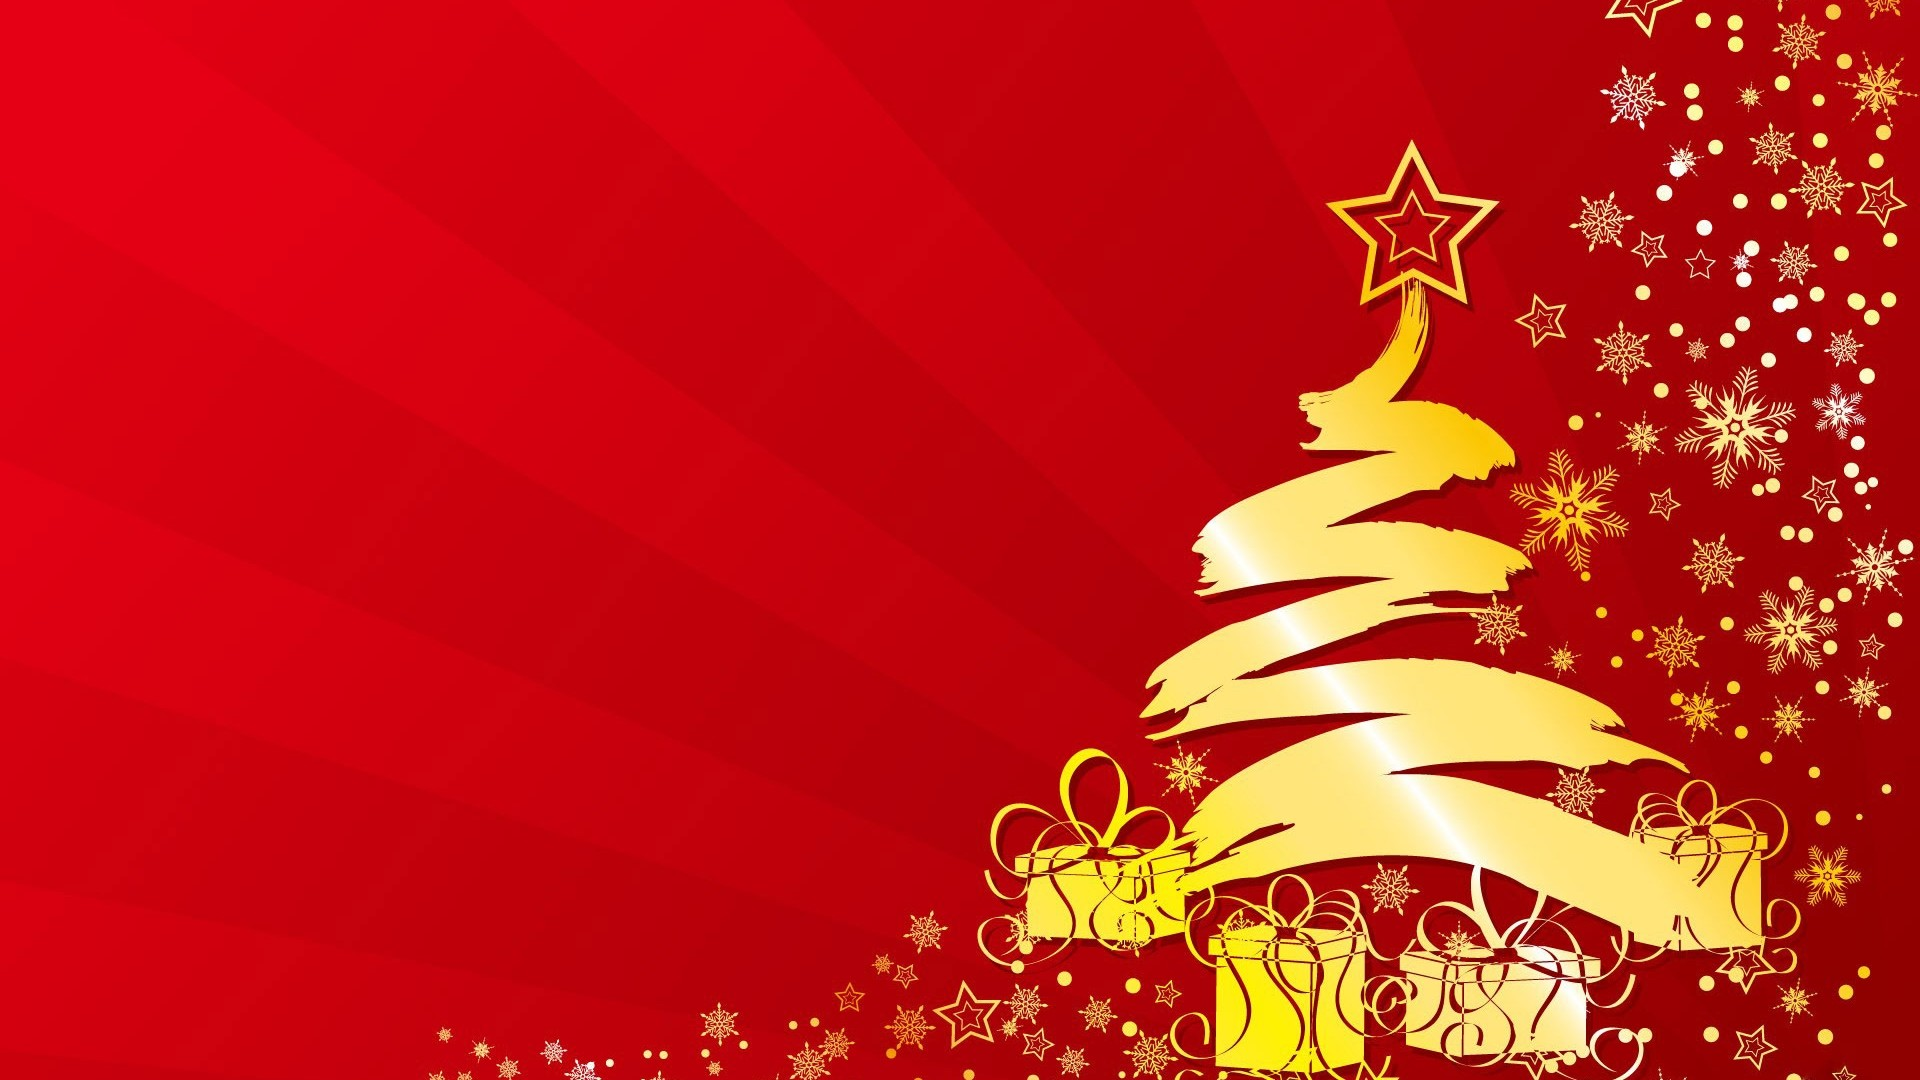 Christmas HD Wallpaper 1 Download Free Wallpapers And Backgrounds